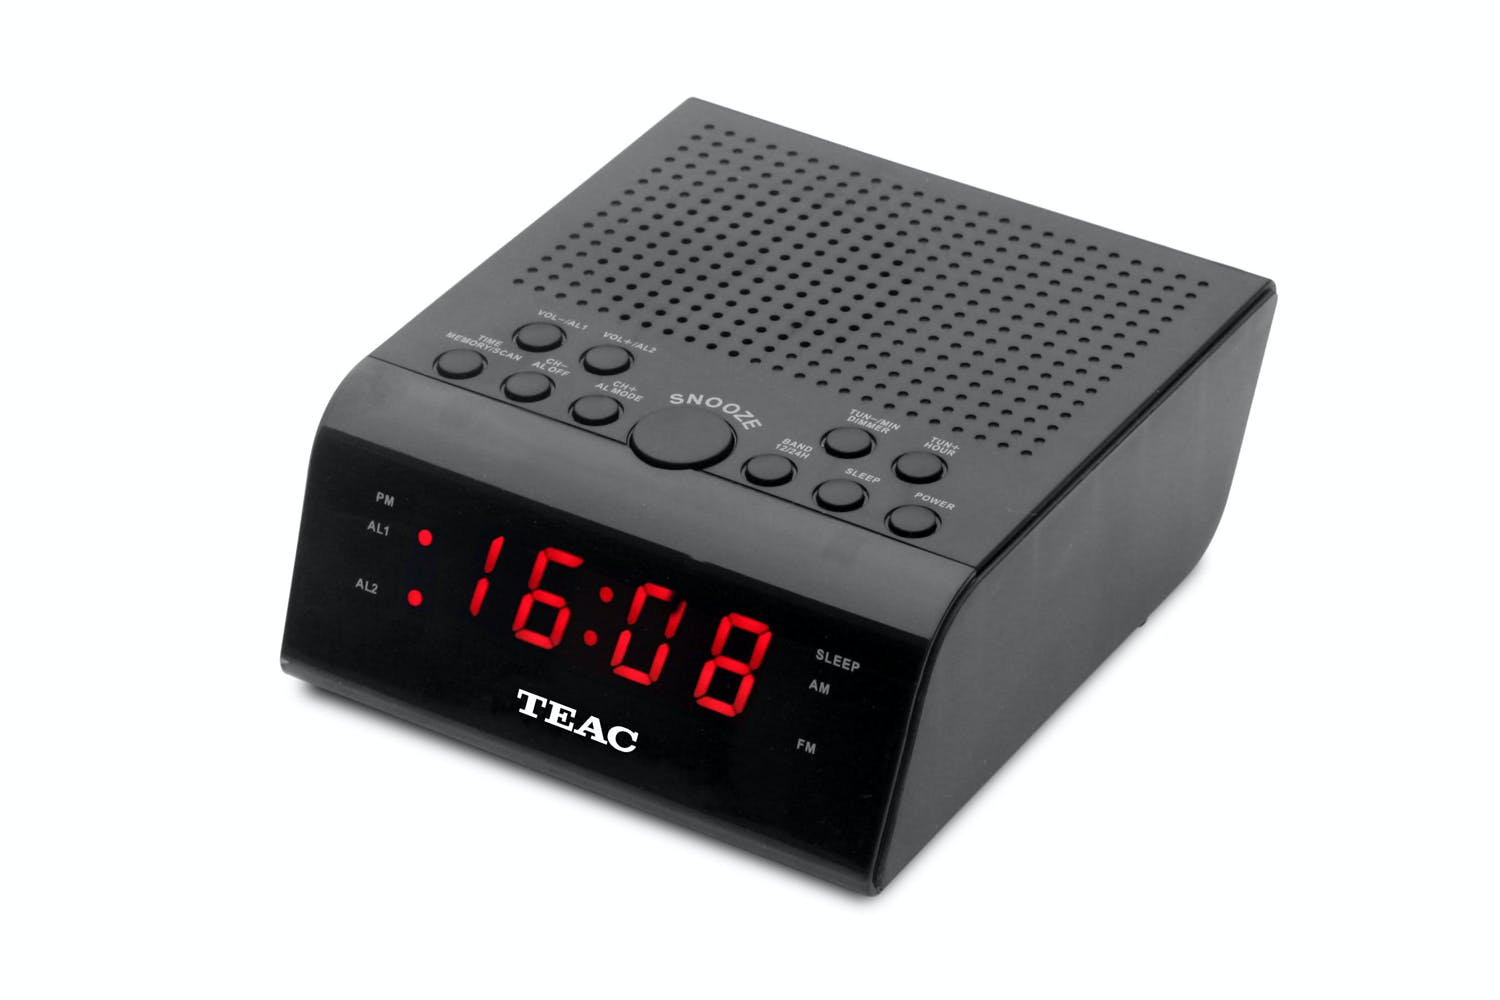 teac alarm clock radio harvey norman new zealand. Black Bedroom Furniture Sets. Home Design Ideas